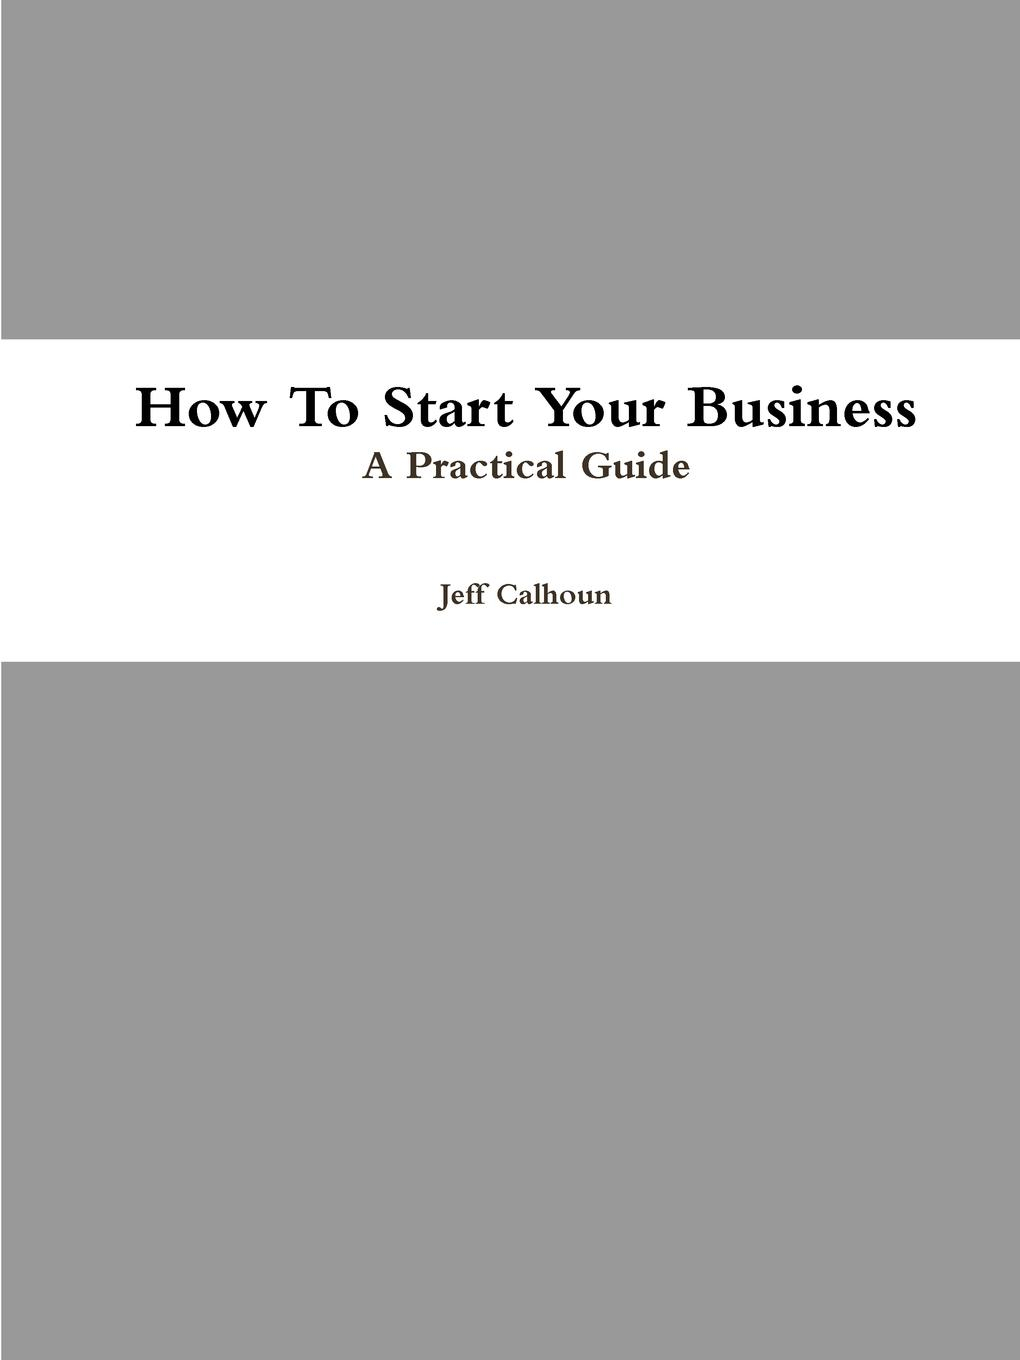 Jeff Calhoun How To Start Your Business adam toren starting your own business become an entrepreneur